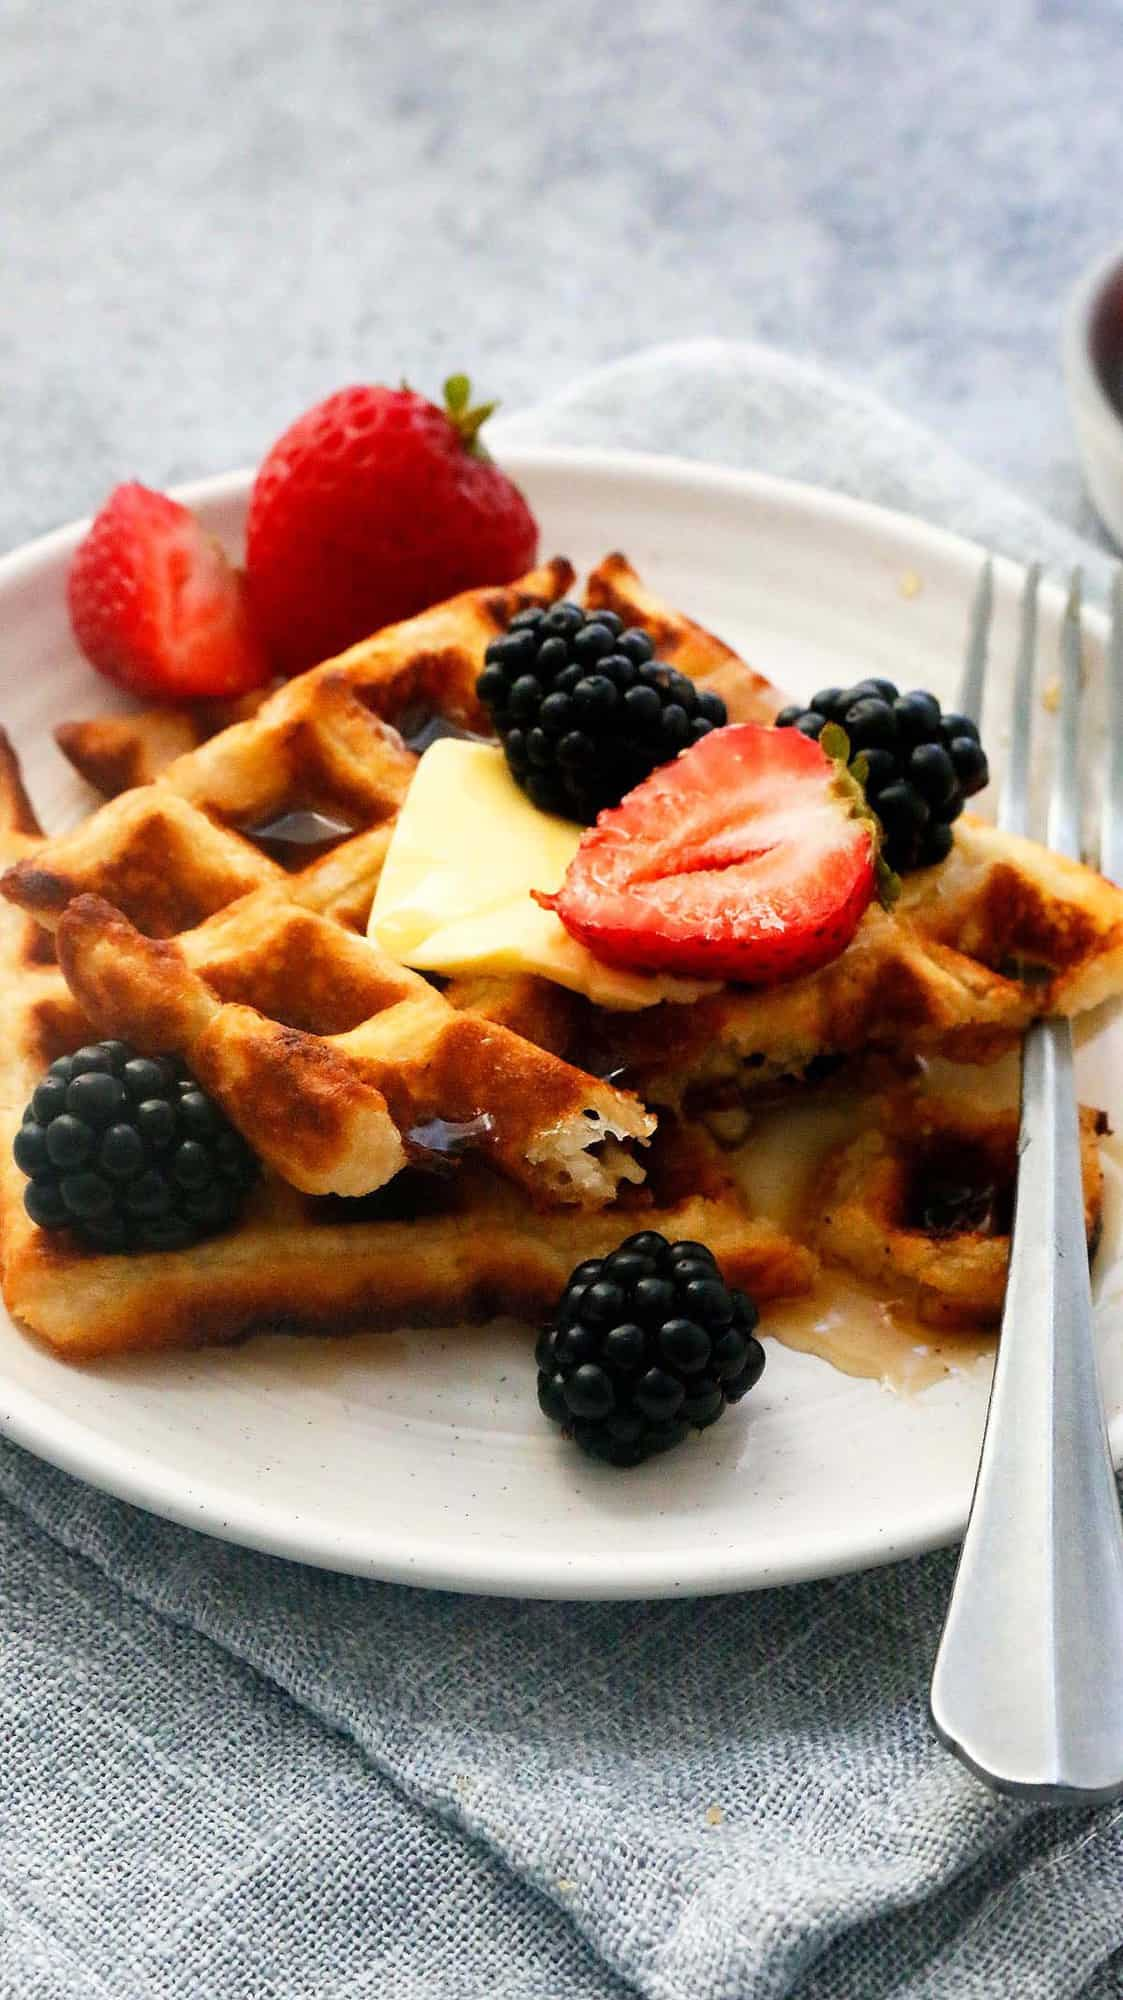 eggless waffles served on a white plate along with a fork